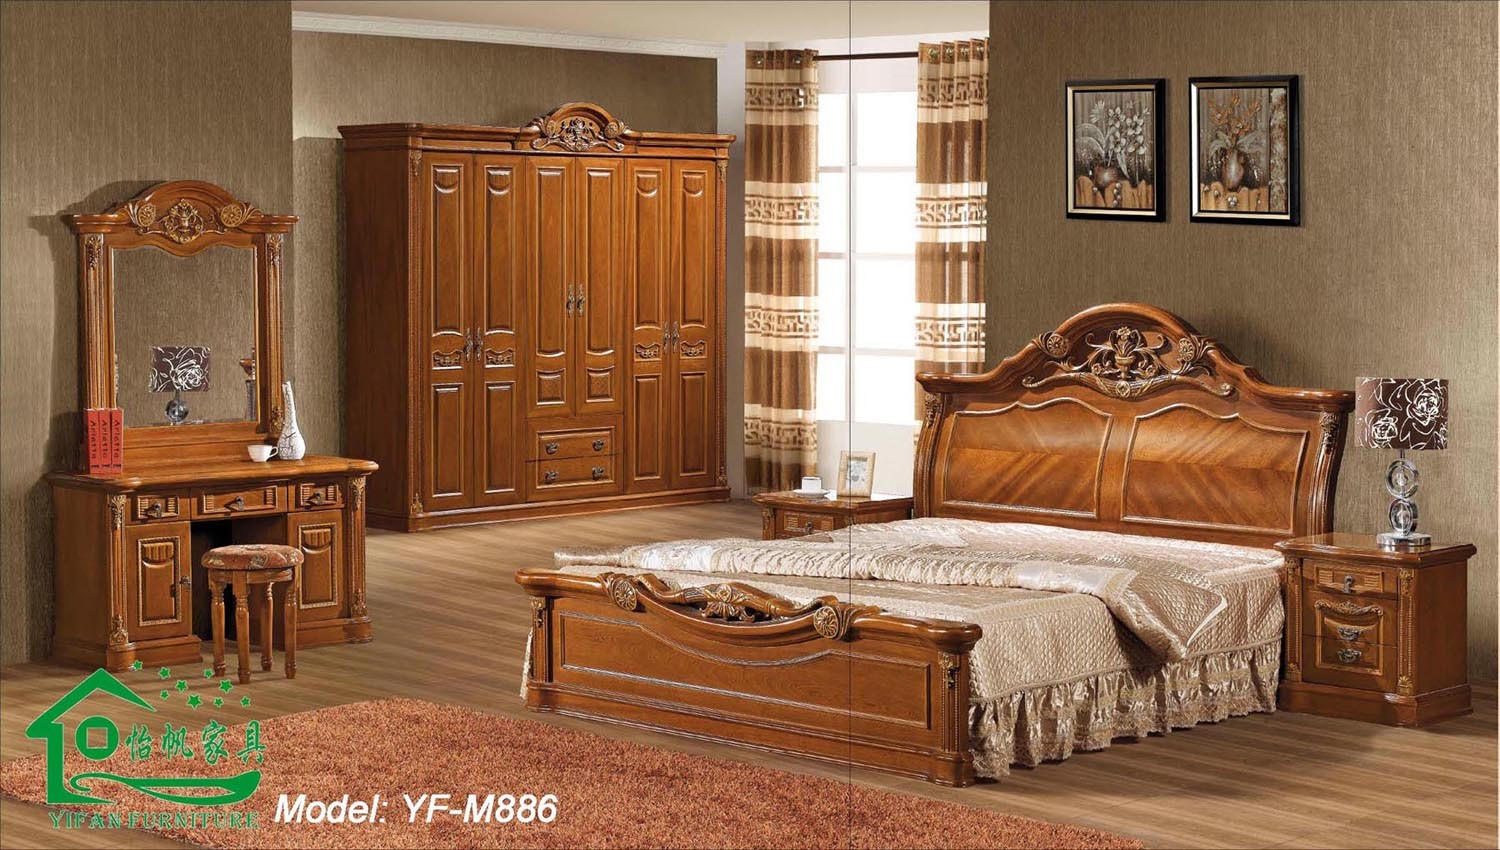 Solid Wood Furniture ~ Wooden bedroom furniture at the galleria